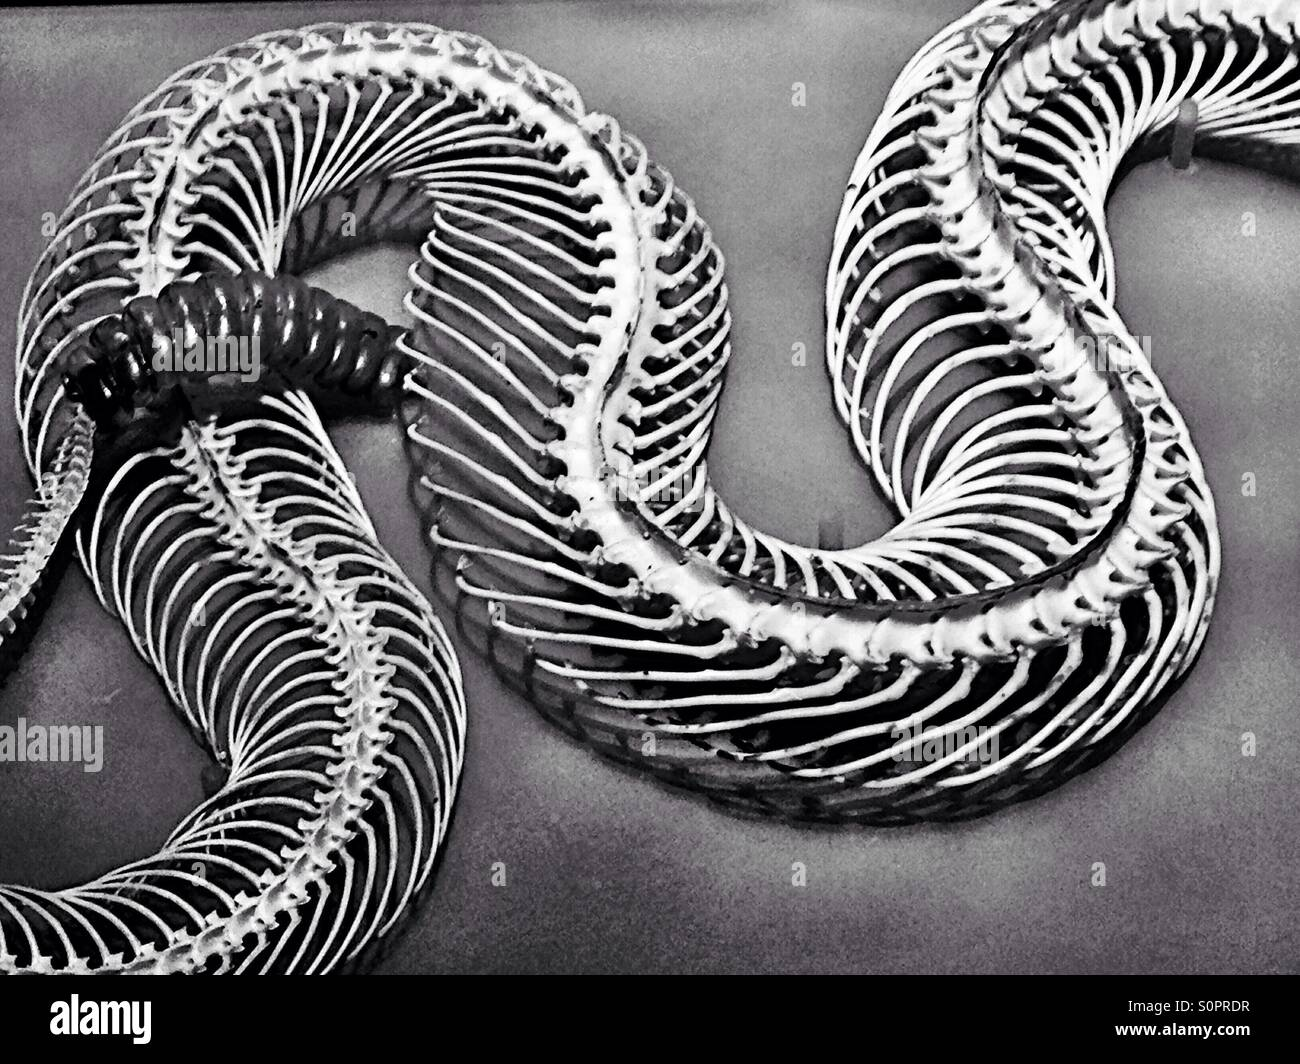 Rattlesnake skeleton in black and white - Stock Image